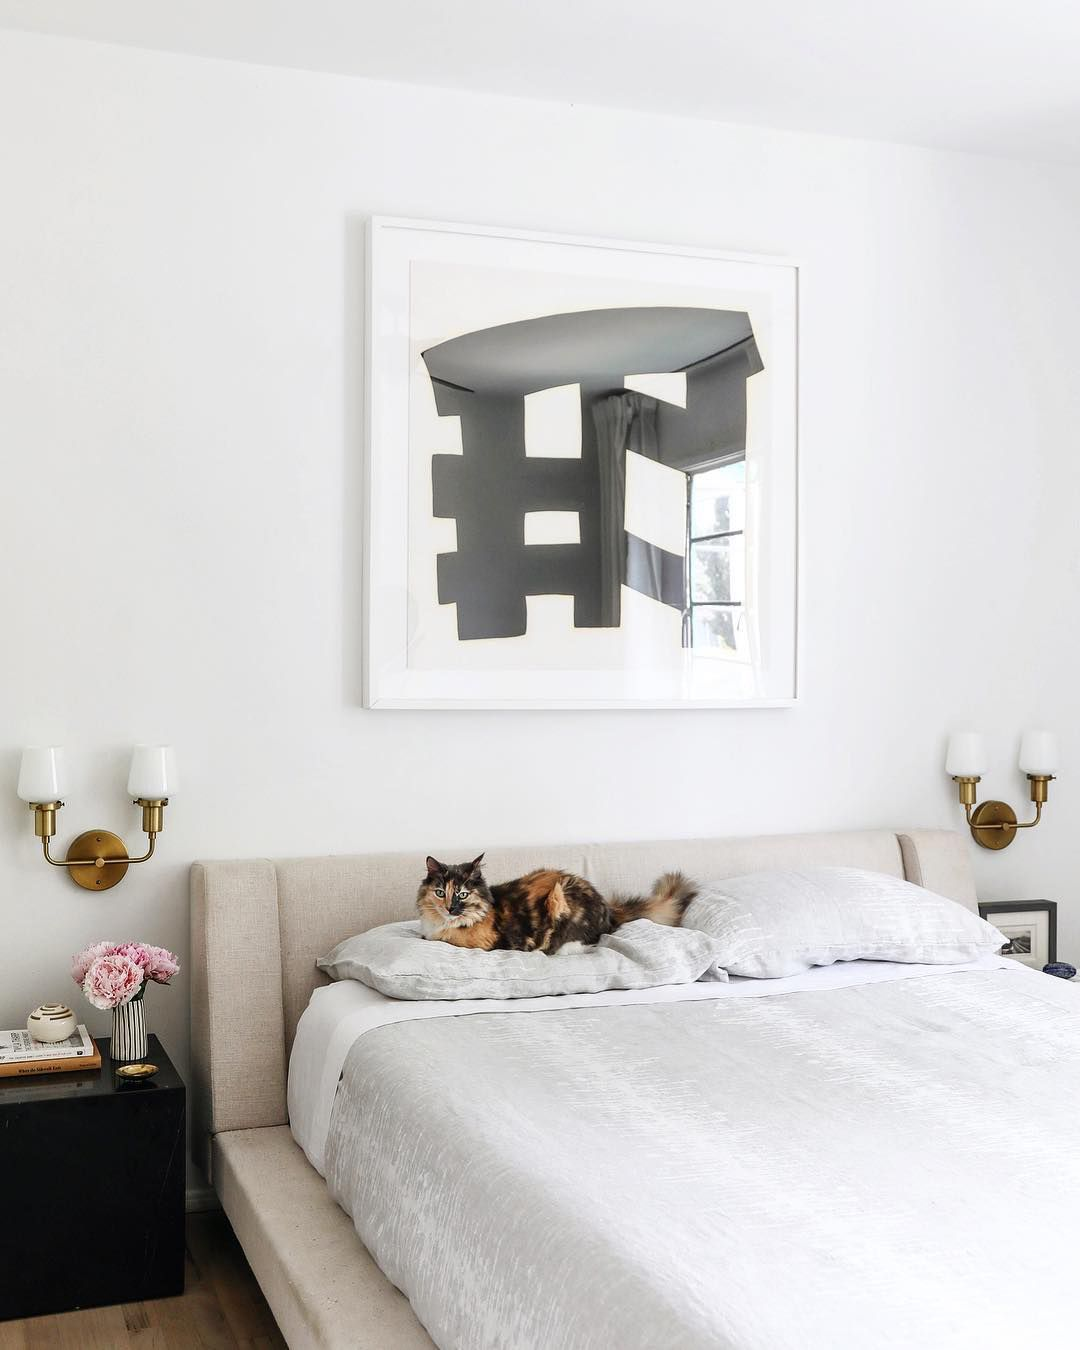 Bedroom with black and white painting above bed